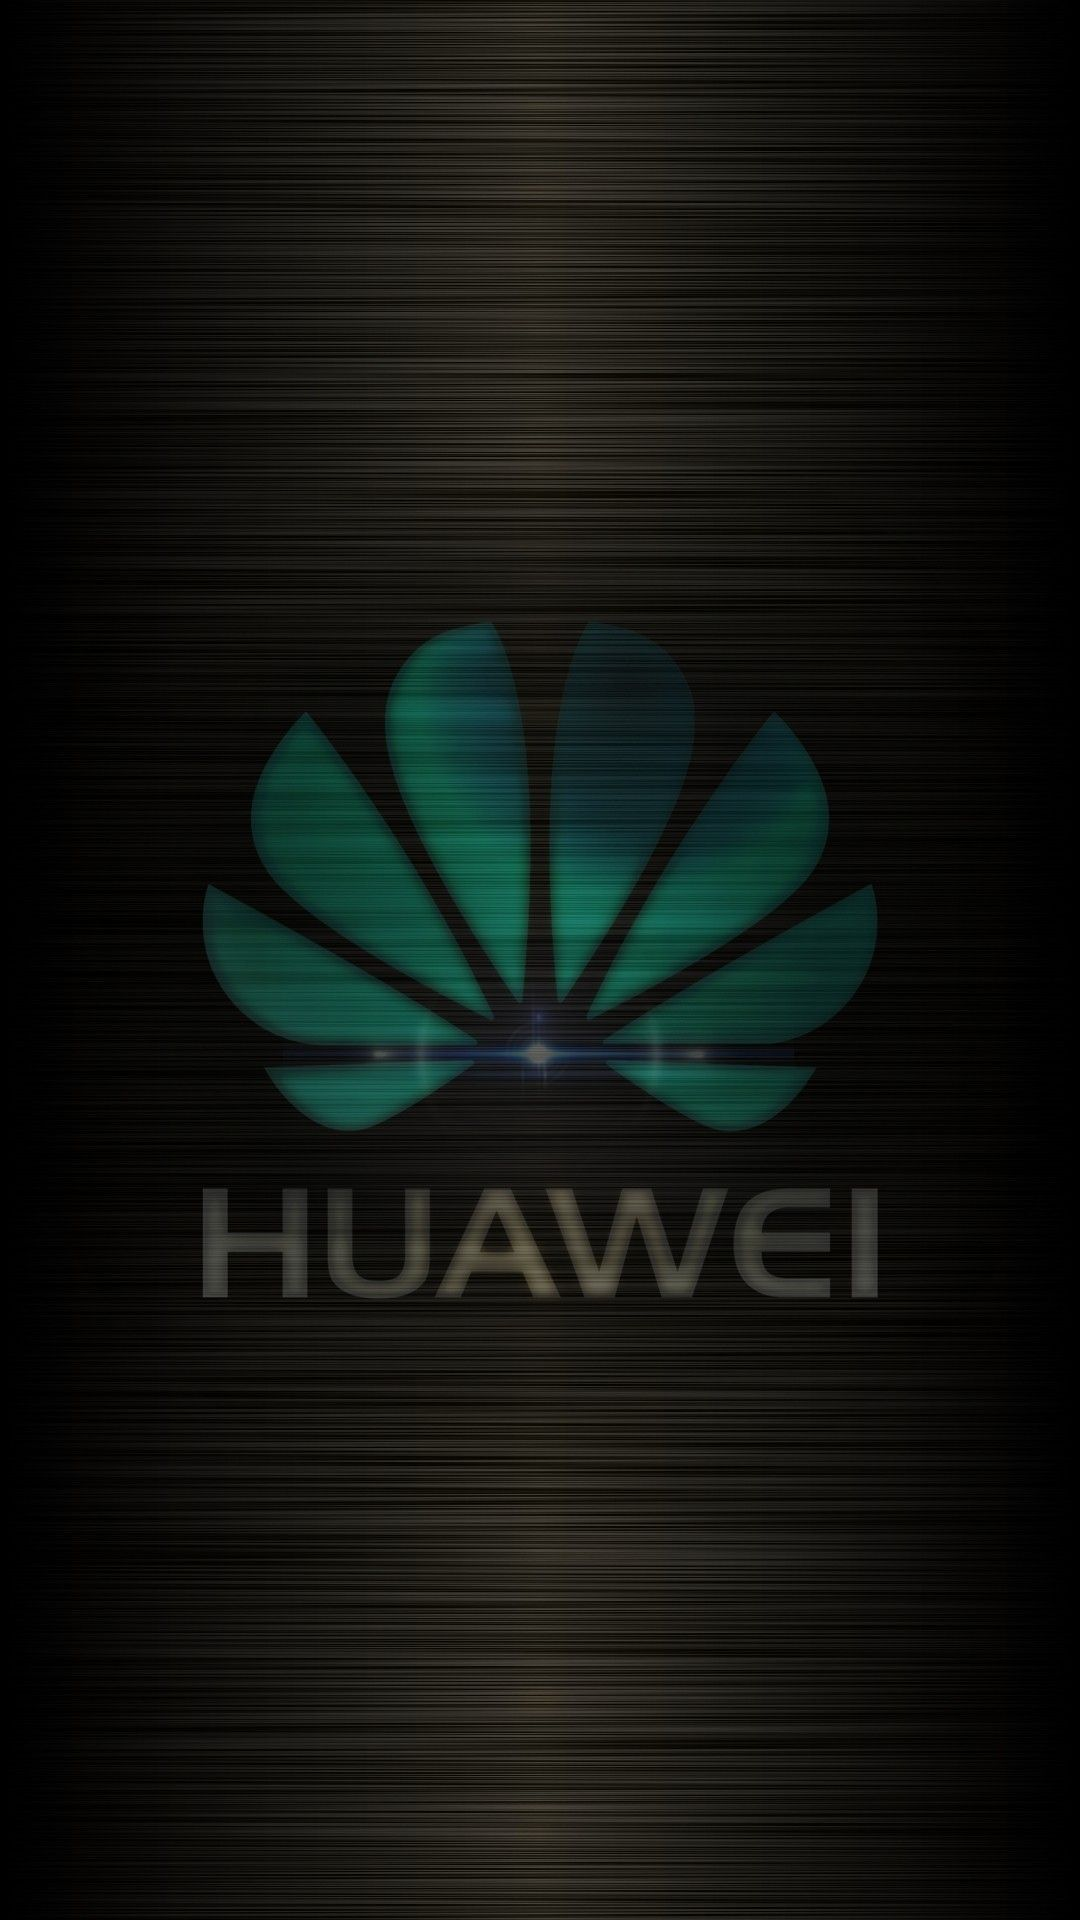 Huawei Mobile Wallpapers Top Free Huawei Mobile